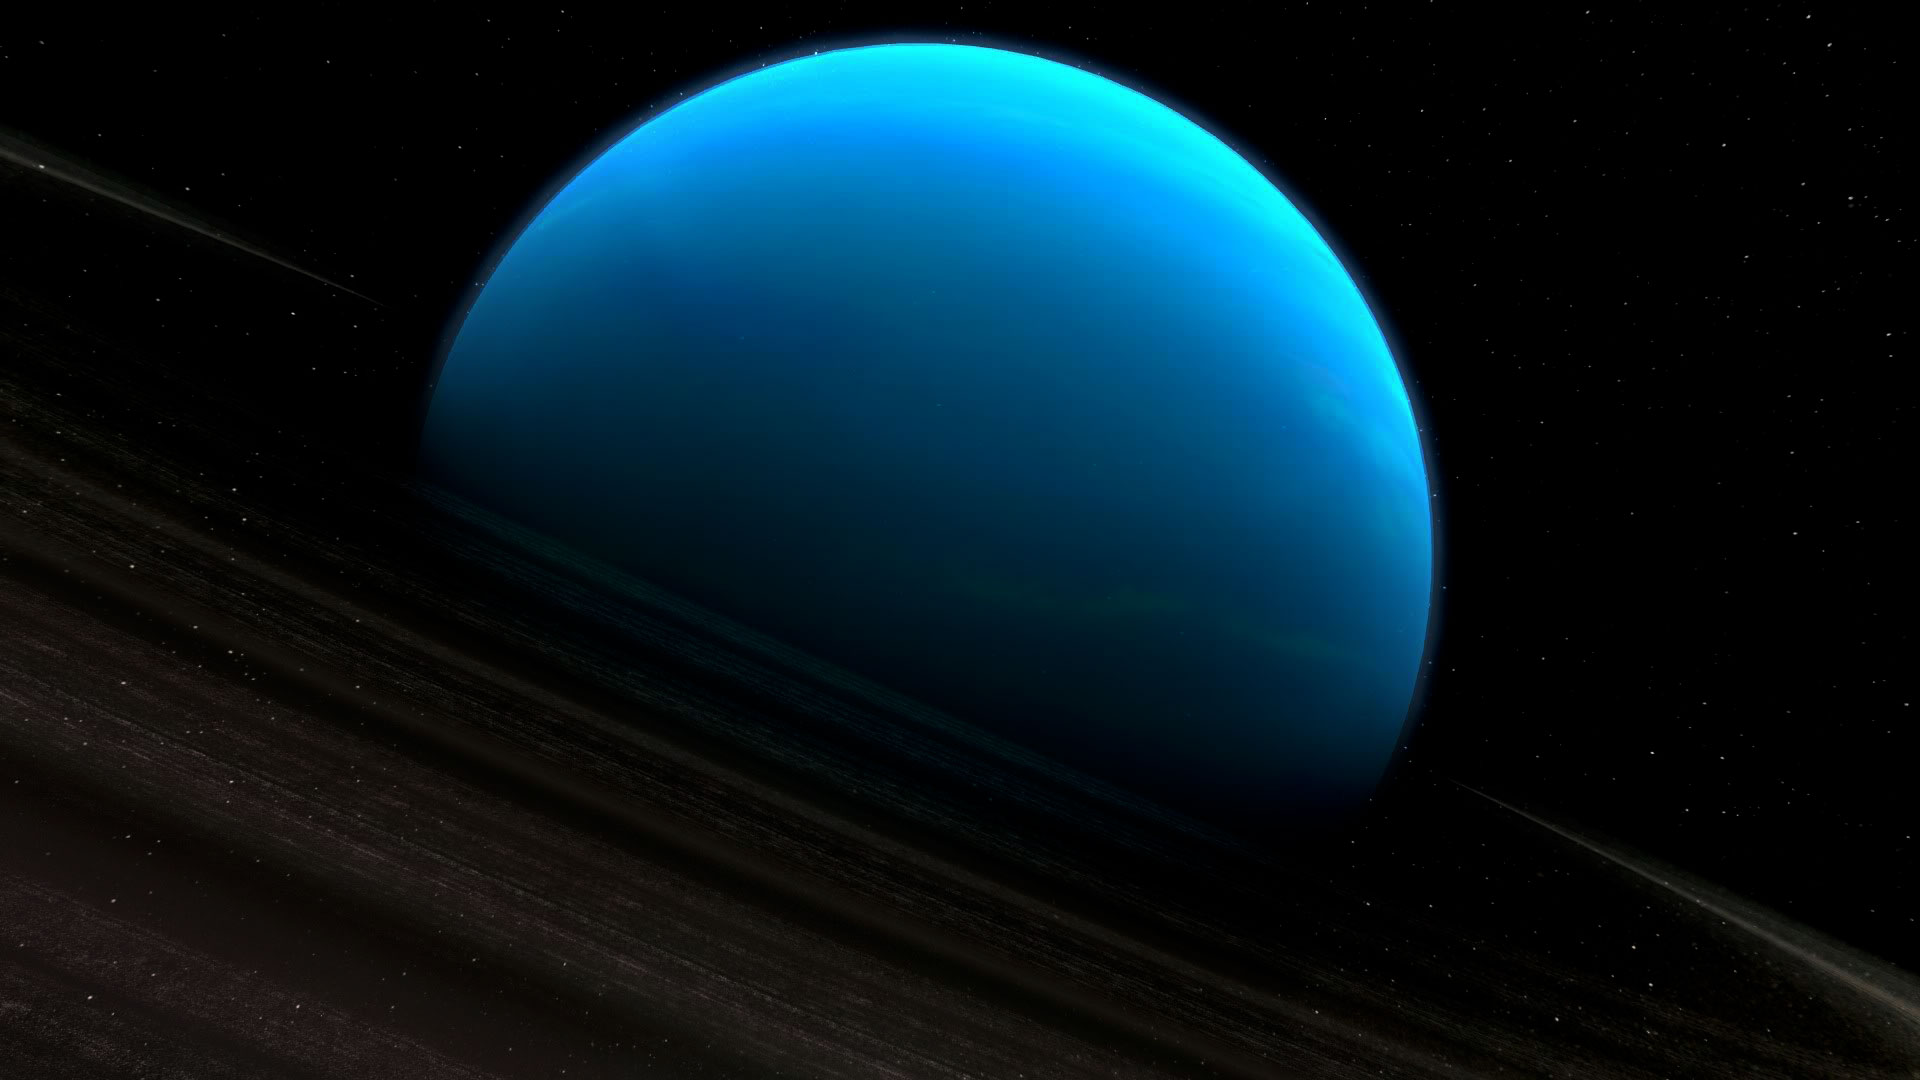 Uranus is the only planet that has 27 moons